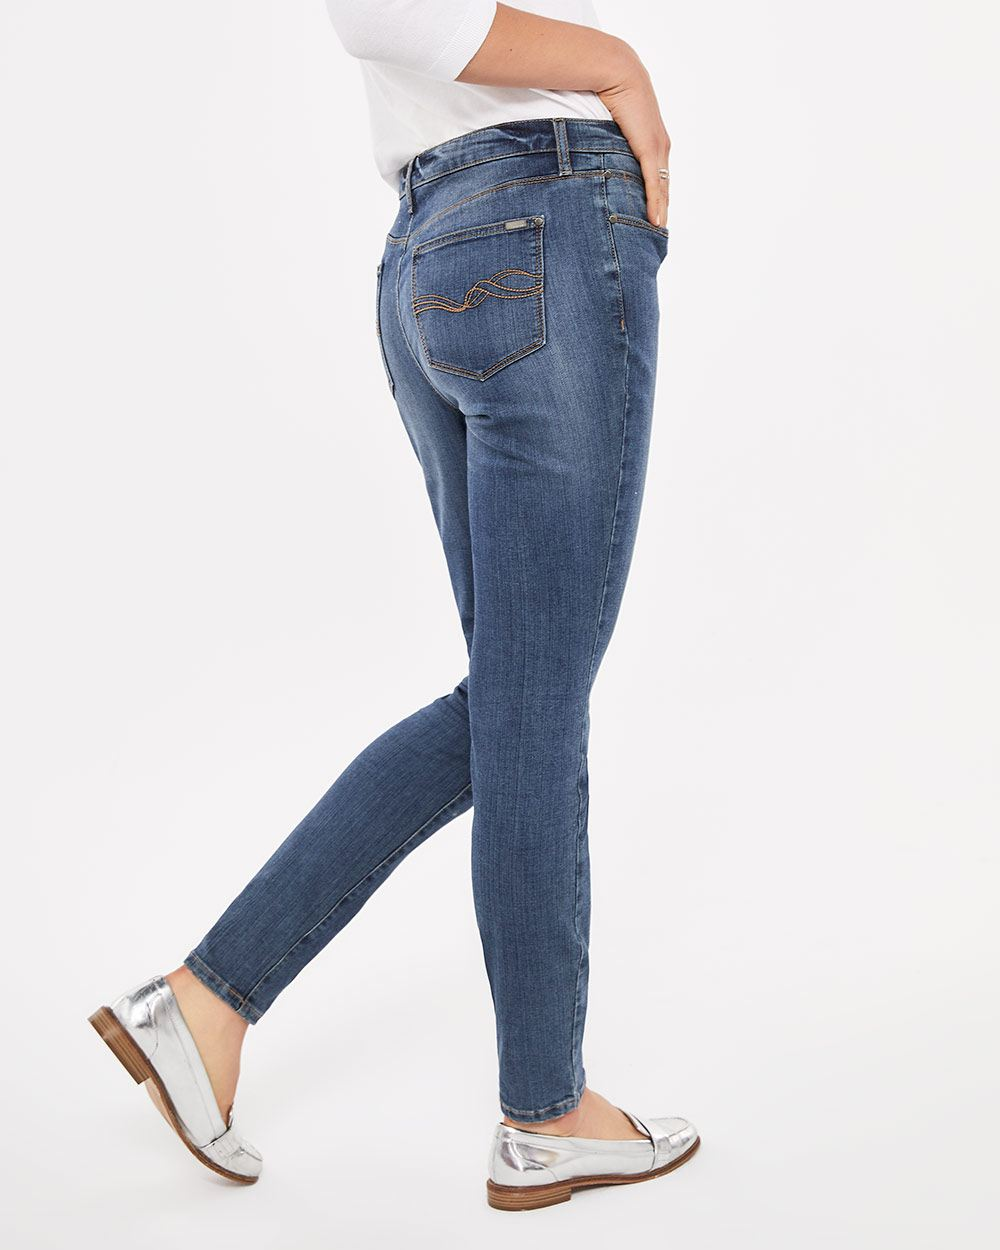 The Signature Soft Tall Skinny Jeans